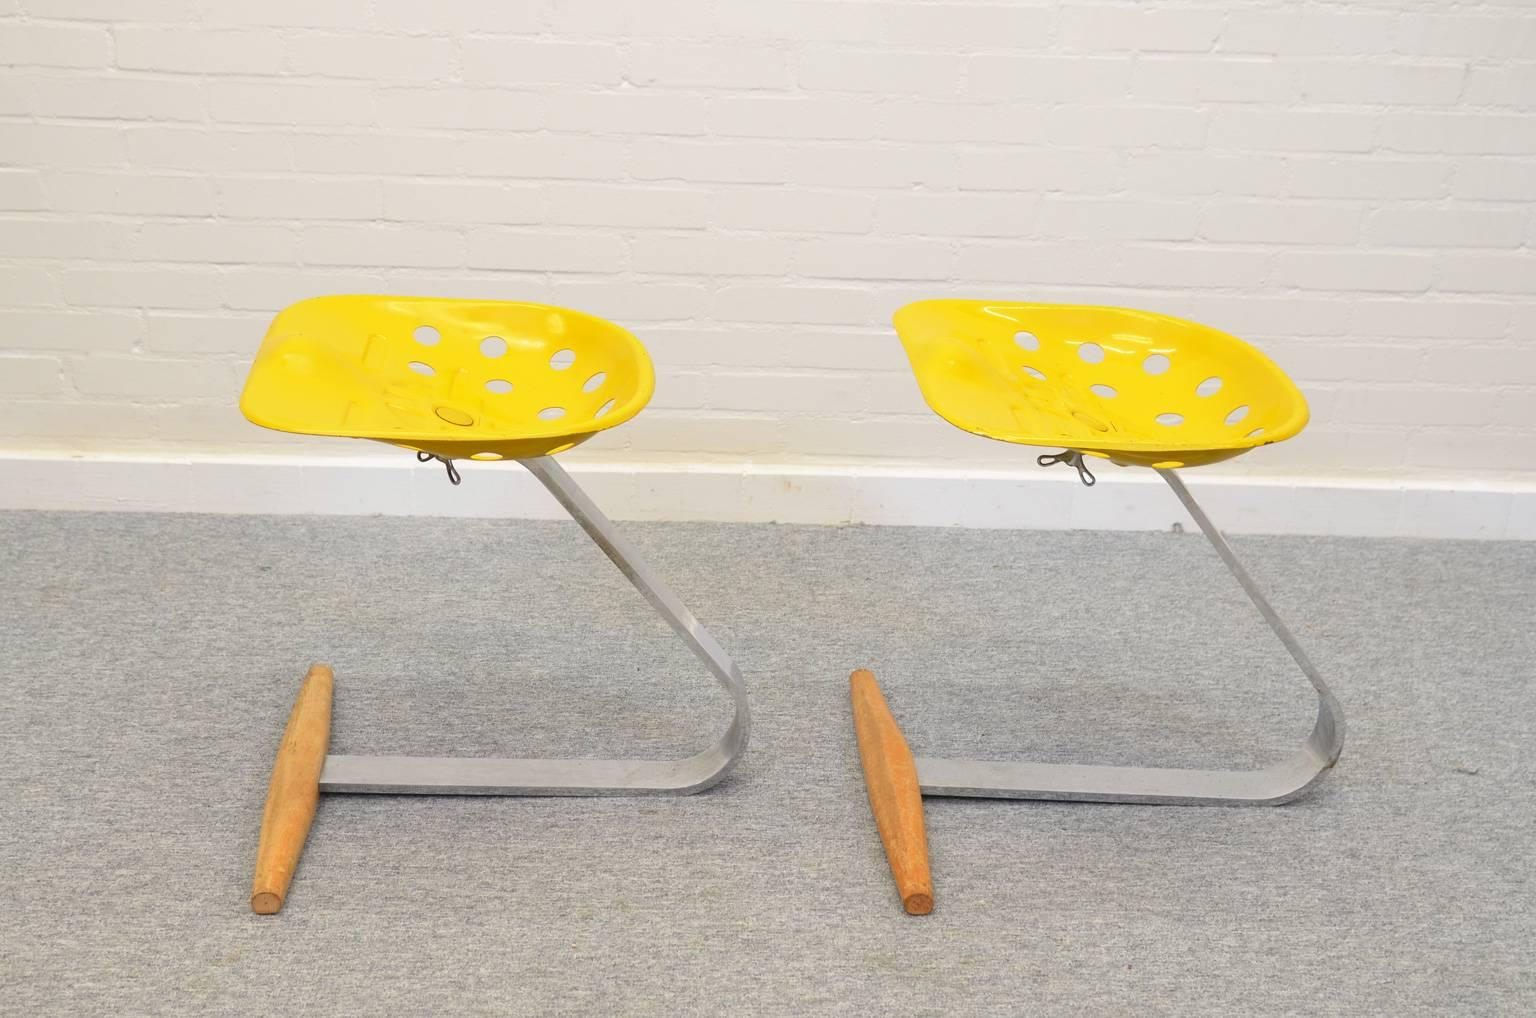 In The Design Of The Mezzadro Tractor Stool The Brothers Castiglioni  Combined Parts Of Existing Ordinary